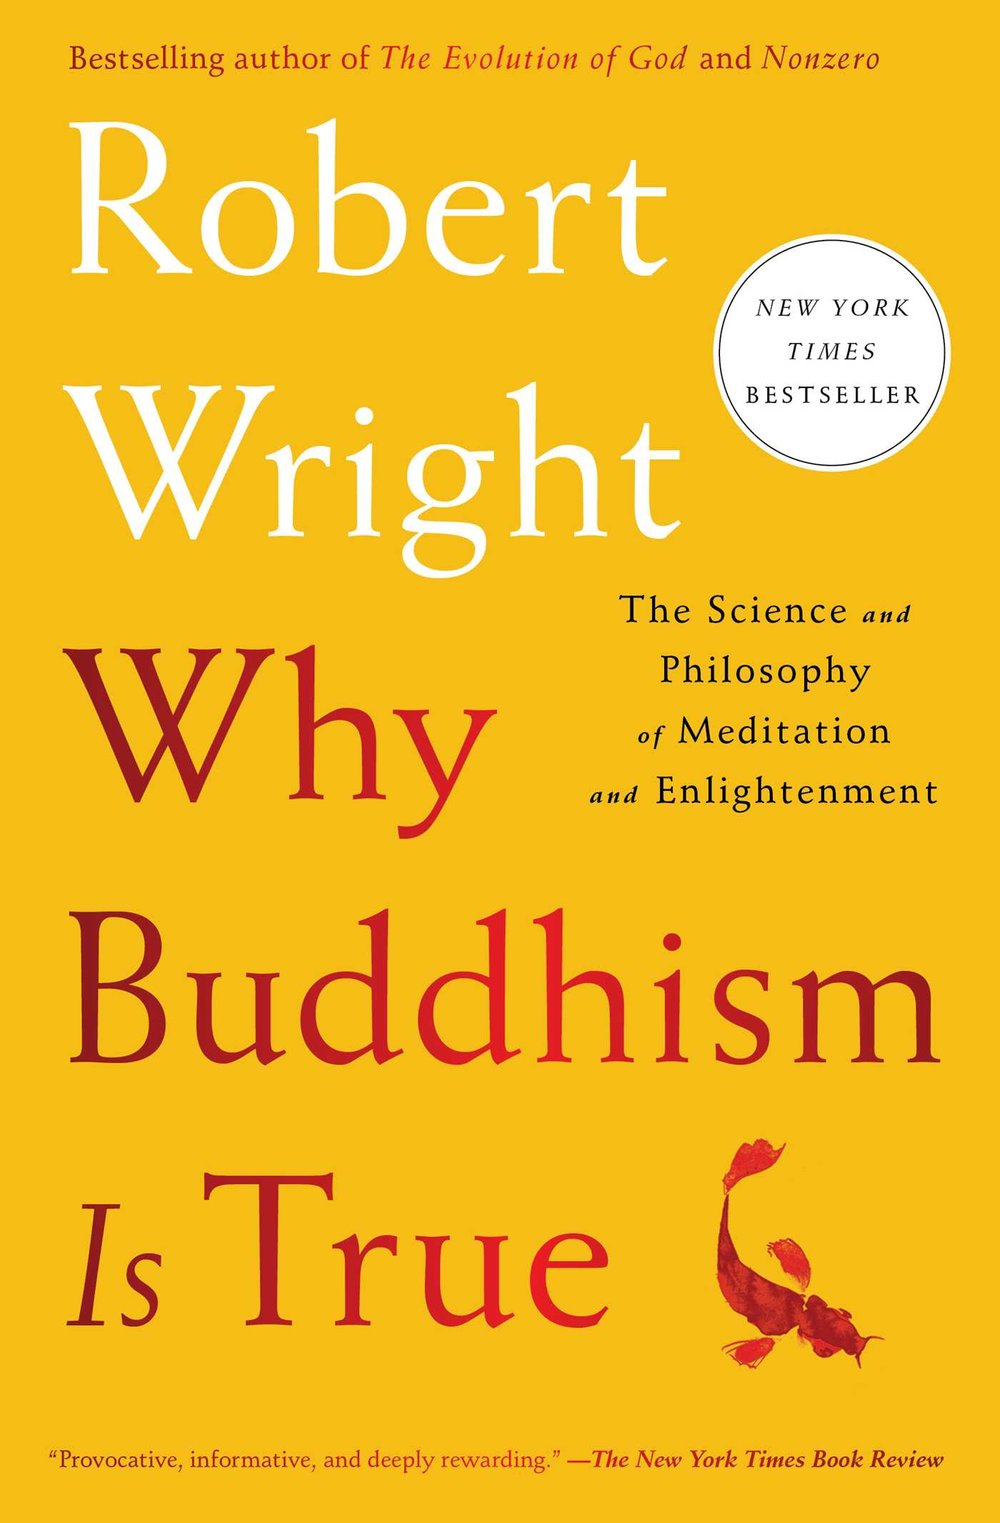 why-buddhism-is-true-9781439195468_hr.jpg